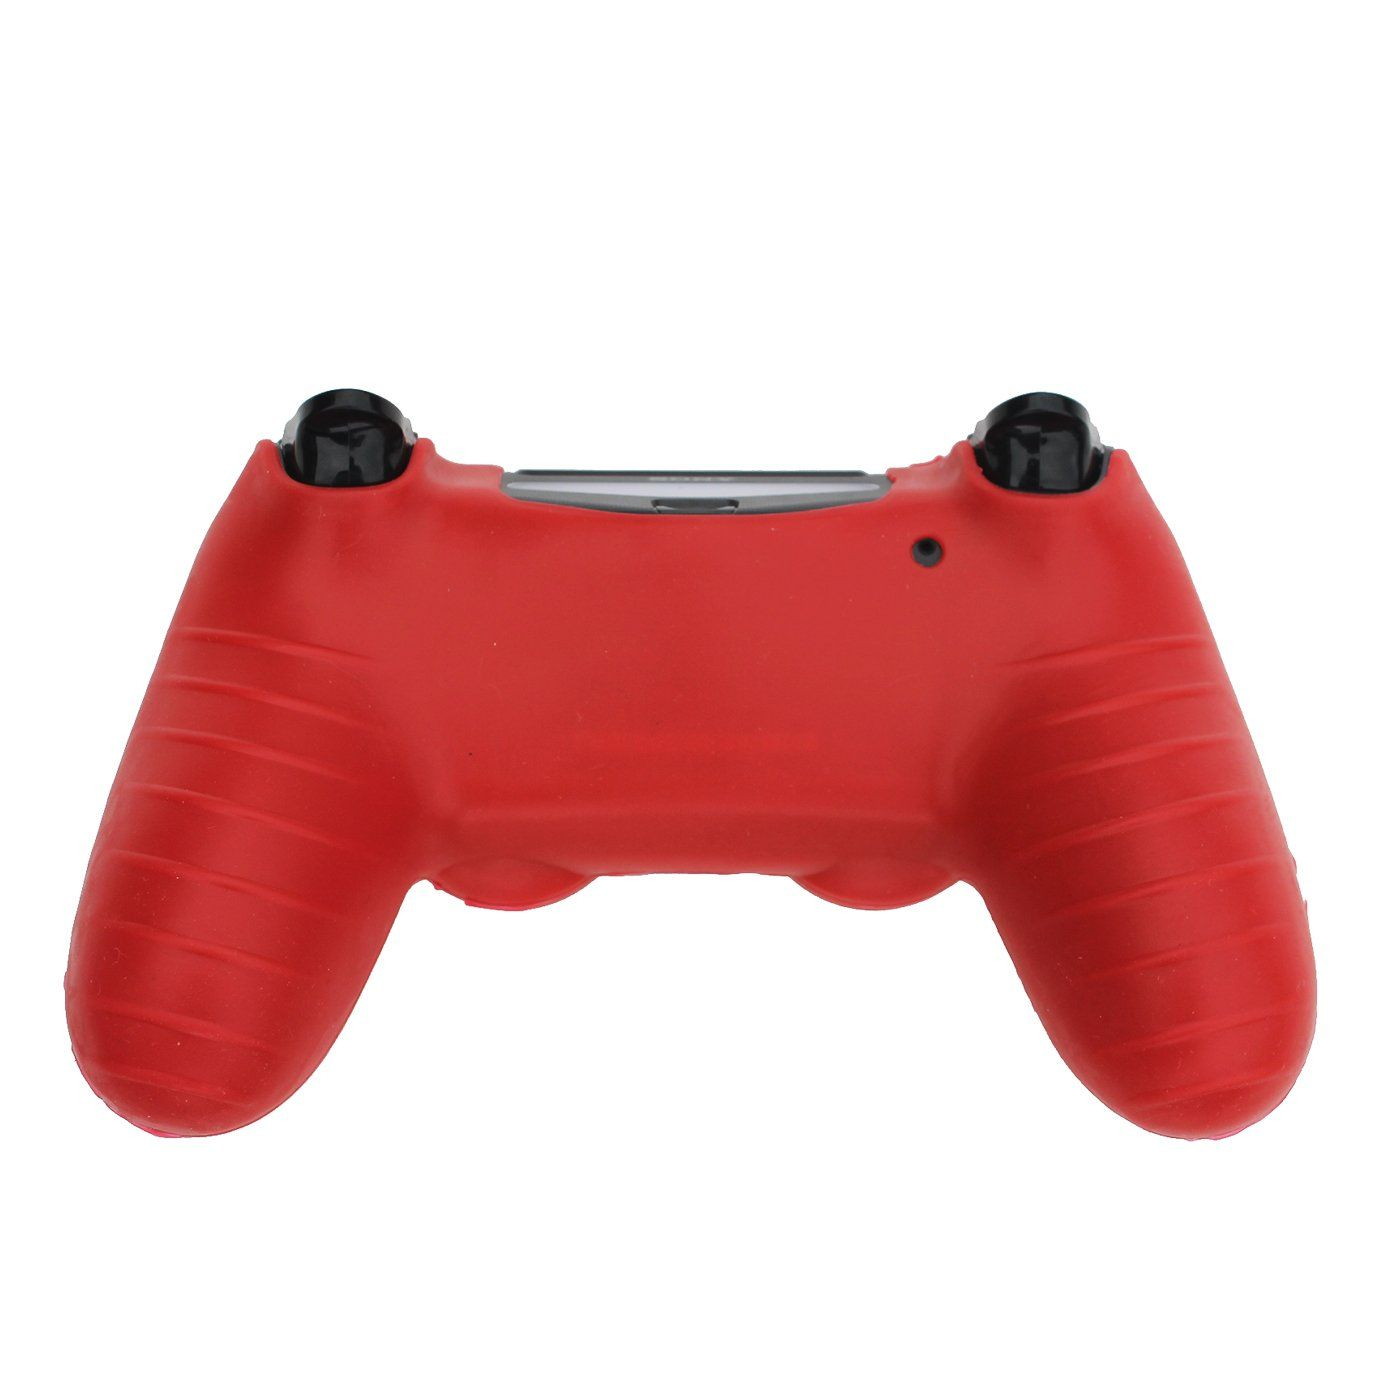 Hde Ps4 Controller Skin Silicone Rubber Protective Grip For Sony